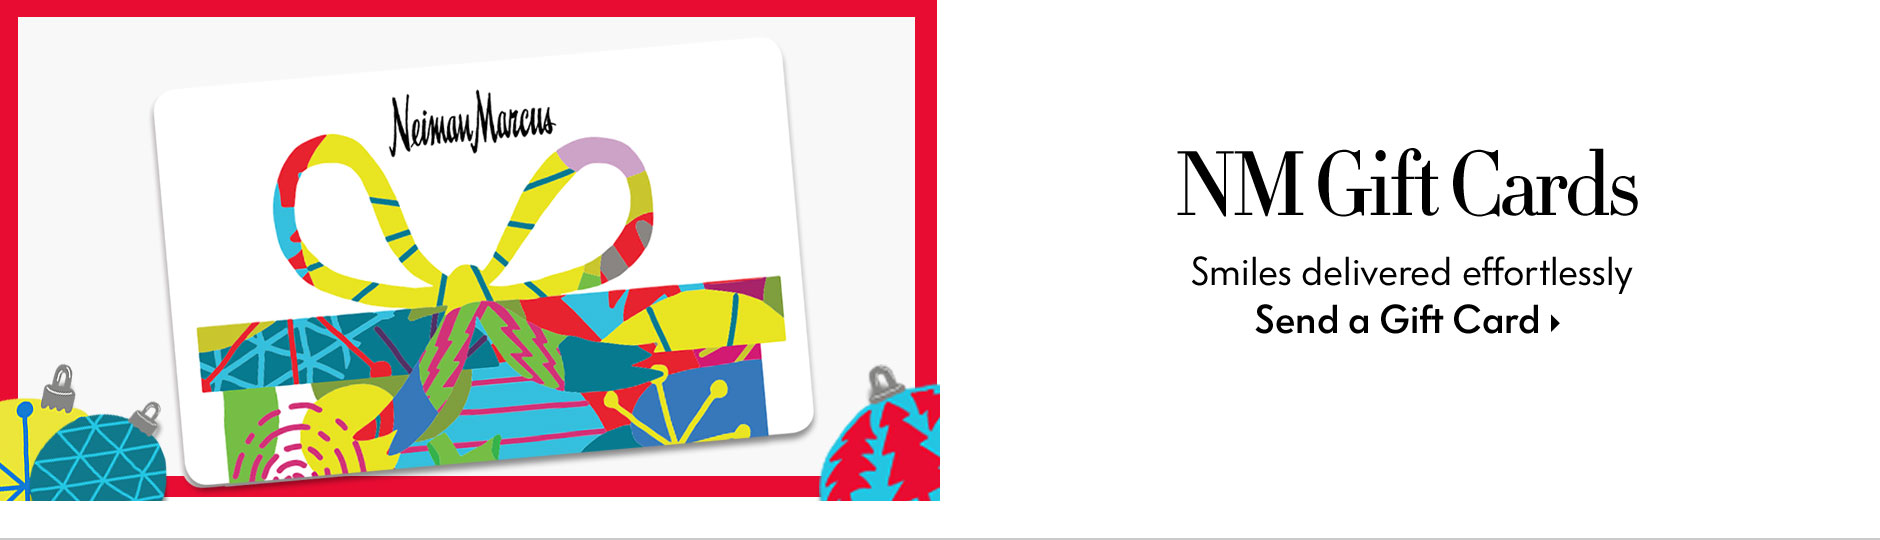 NM Gift Cards - Smiles delivered effortlessly - Send a virtual gift card